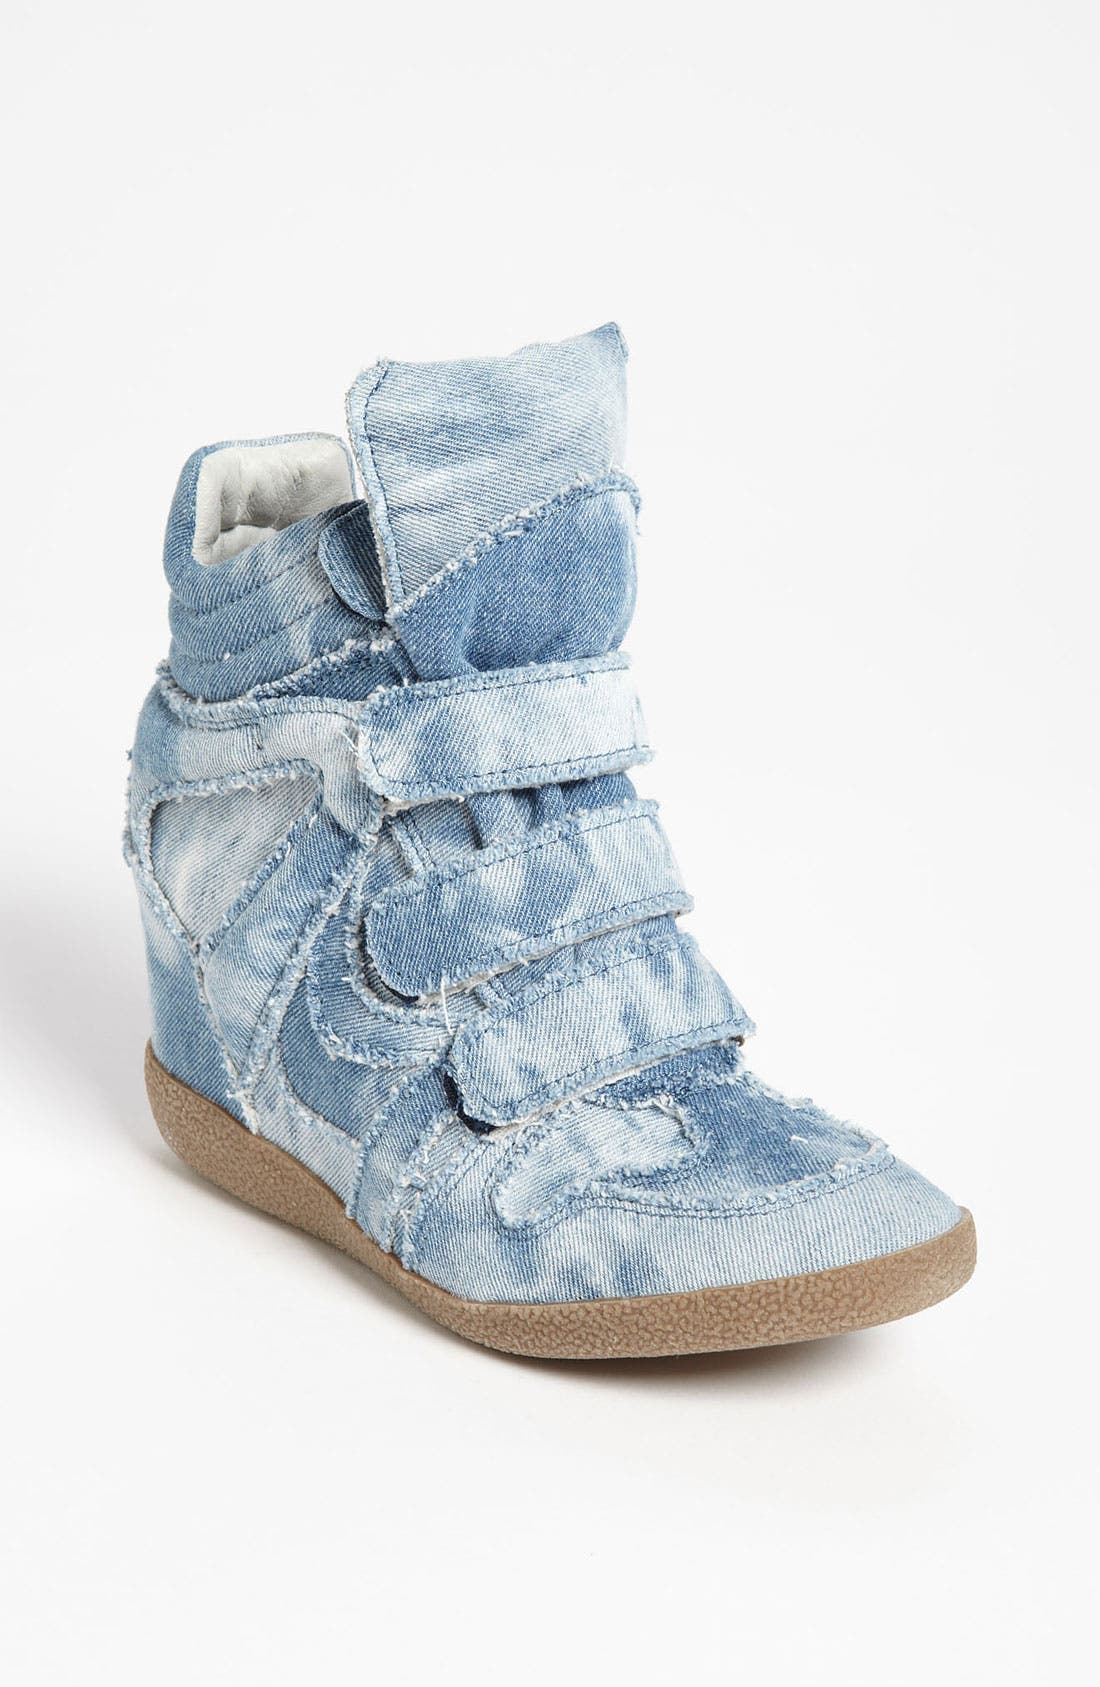 'Hilite-C' Wedge Sneaker,                         Main,                         color, Denim